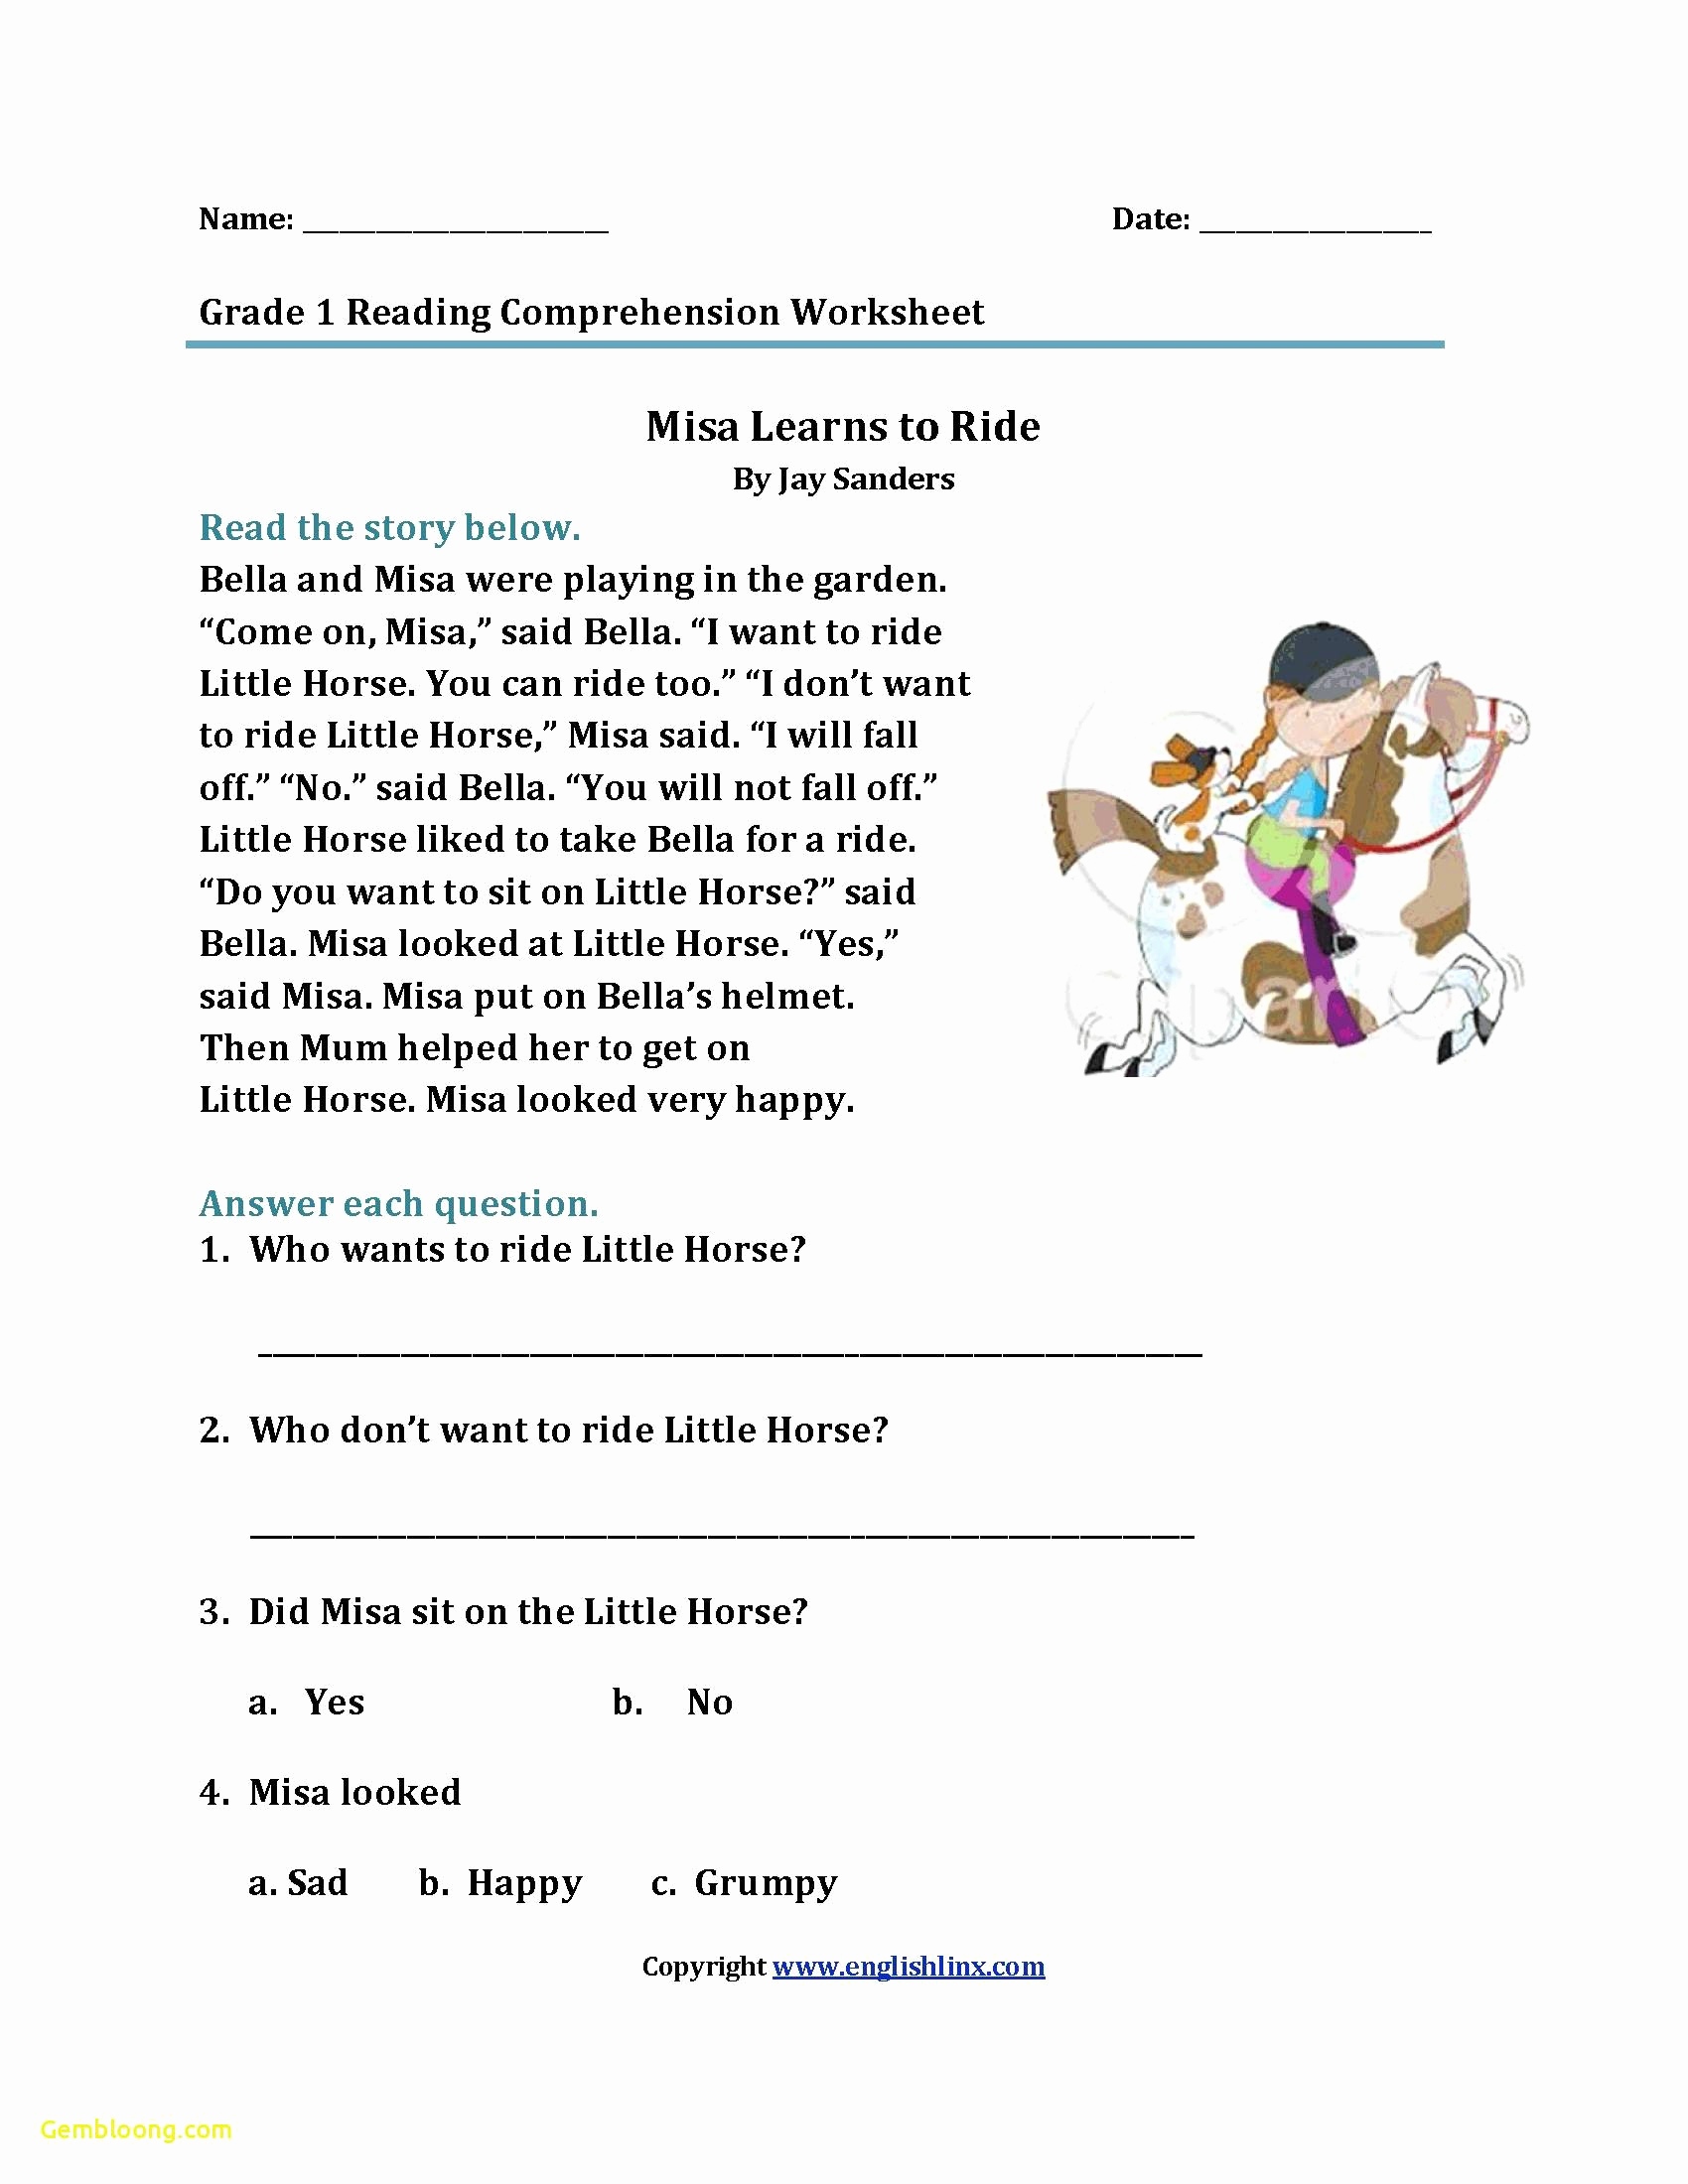 Comprehension Worksheet First Grade Beautiful Reading Prehension Worksheets for 1st Grade — Db Excel